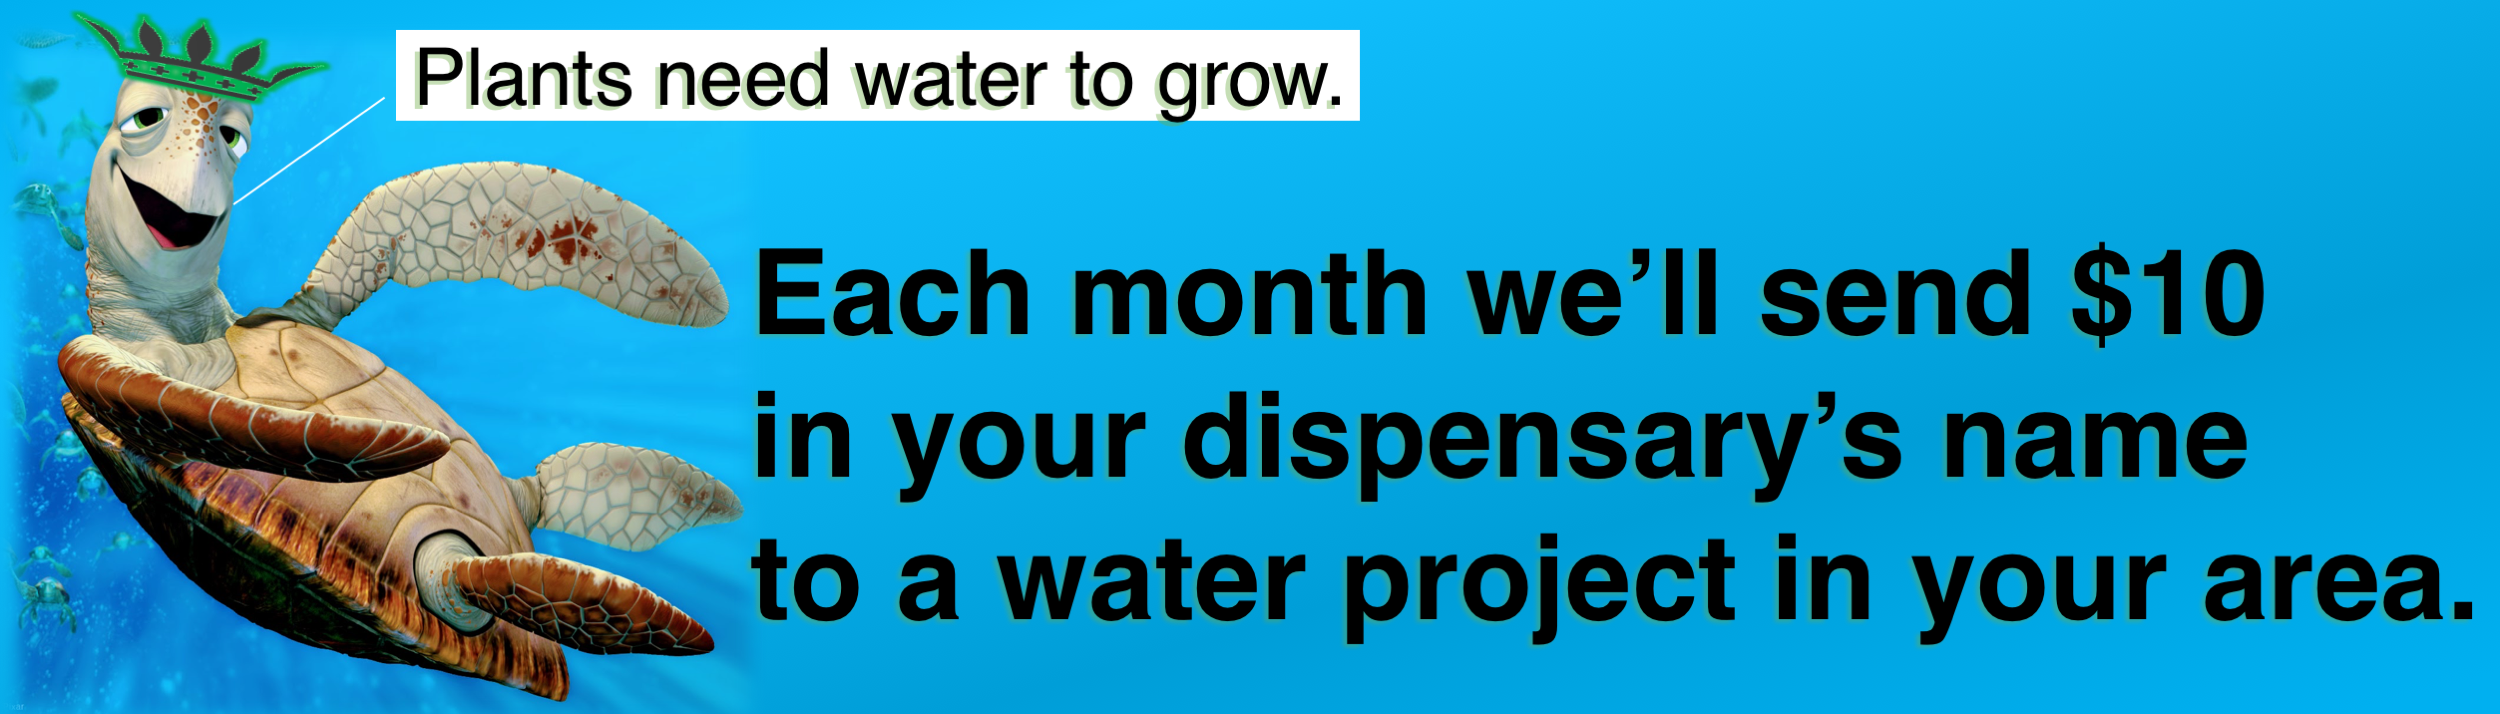 plants need water to grow.png